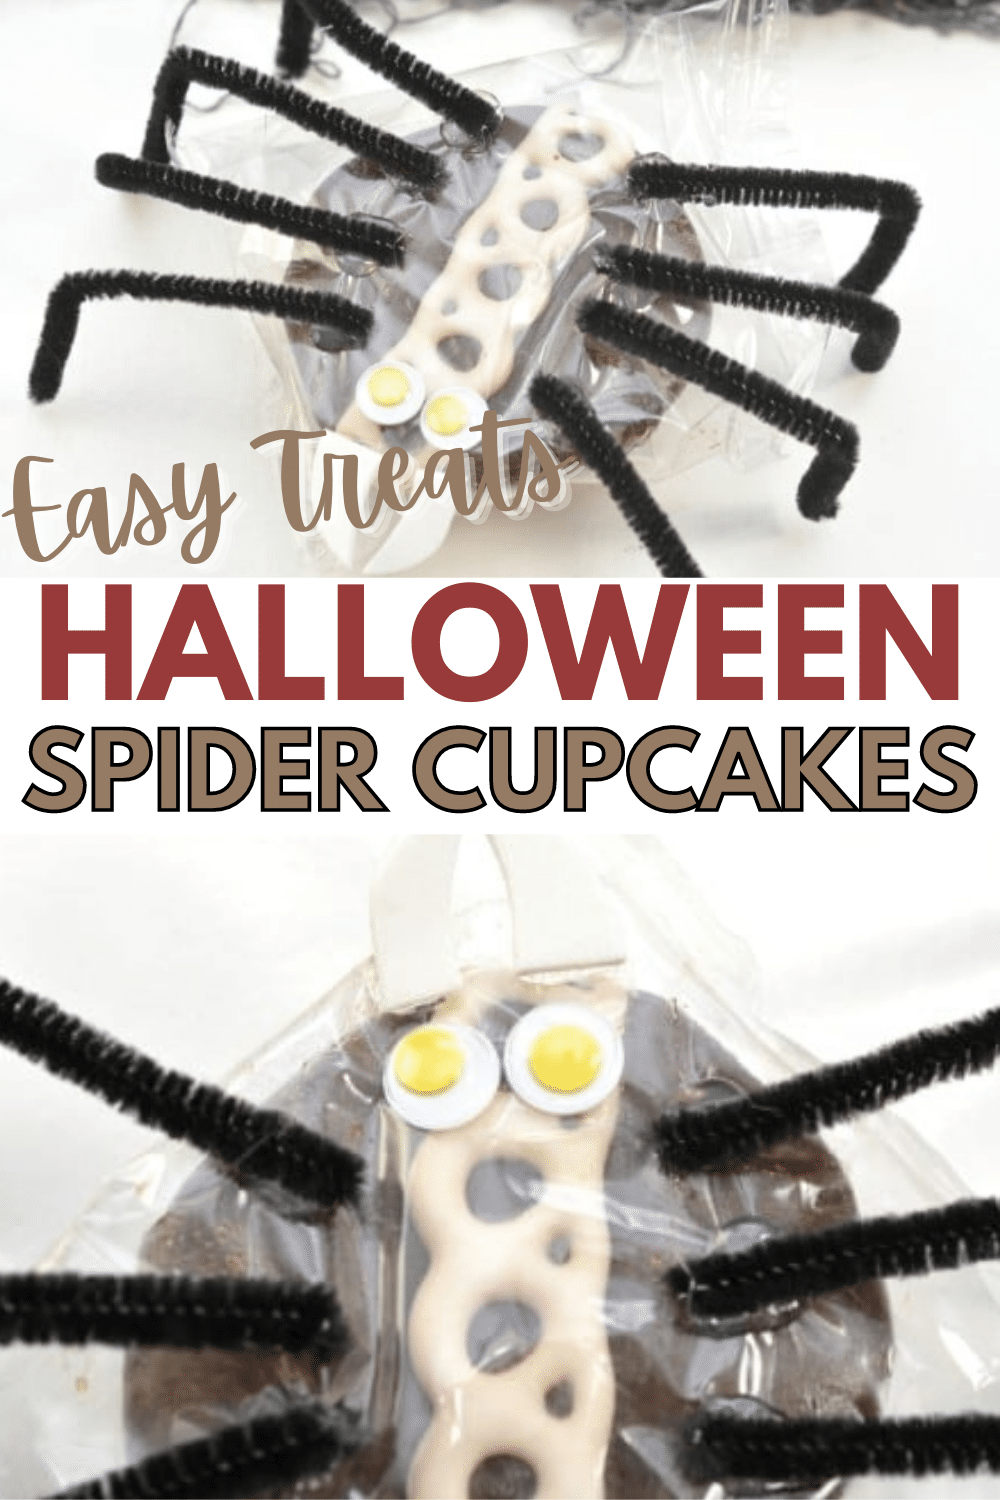 These Cupcake Spiders are super easy to make since you start with a Hostess cupcake! Such a simple way to add some fun to make a Halloween lunchbox treat! #Halloween #funfood #easycraft via @wondermomwannab